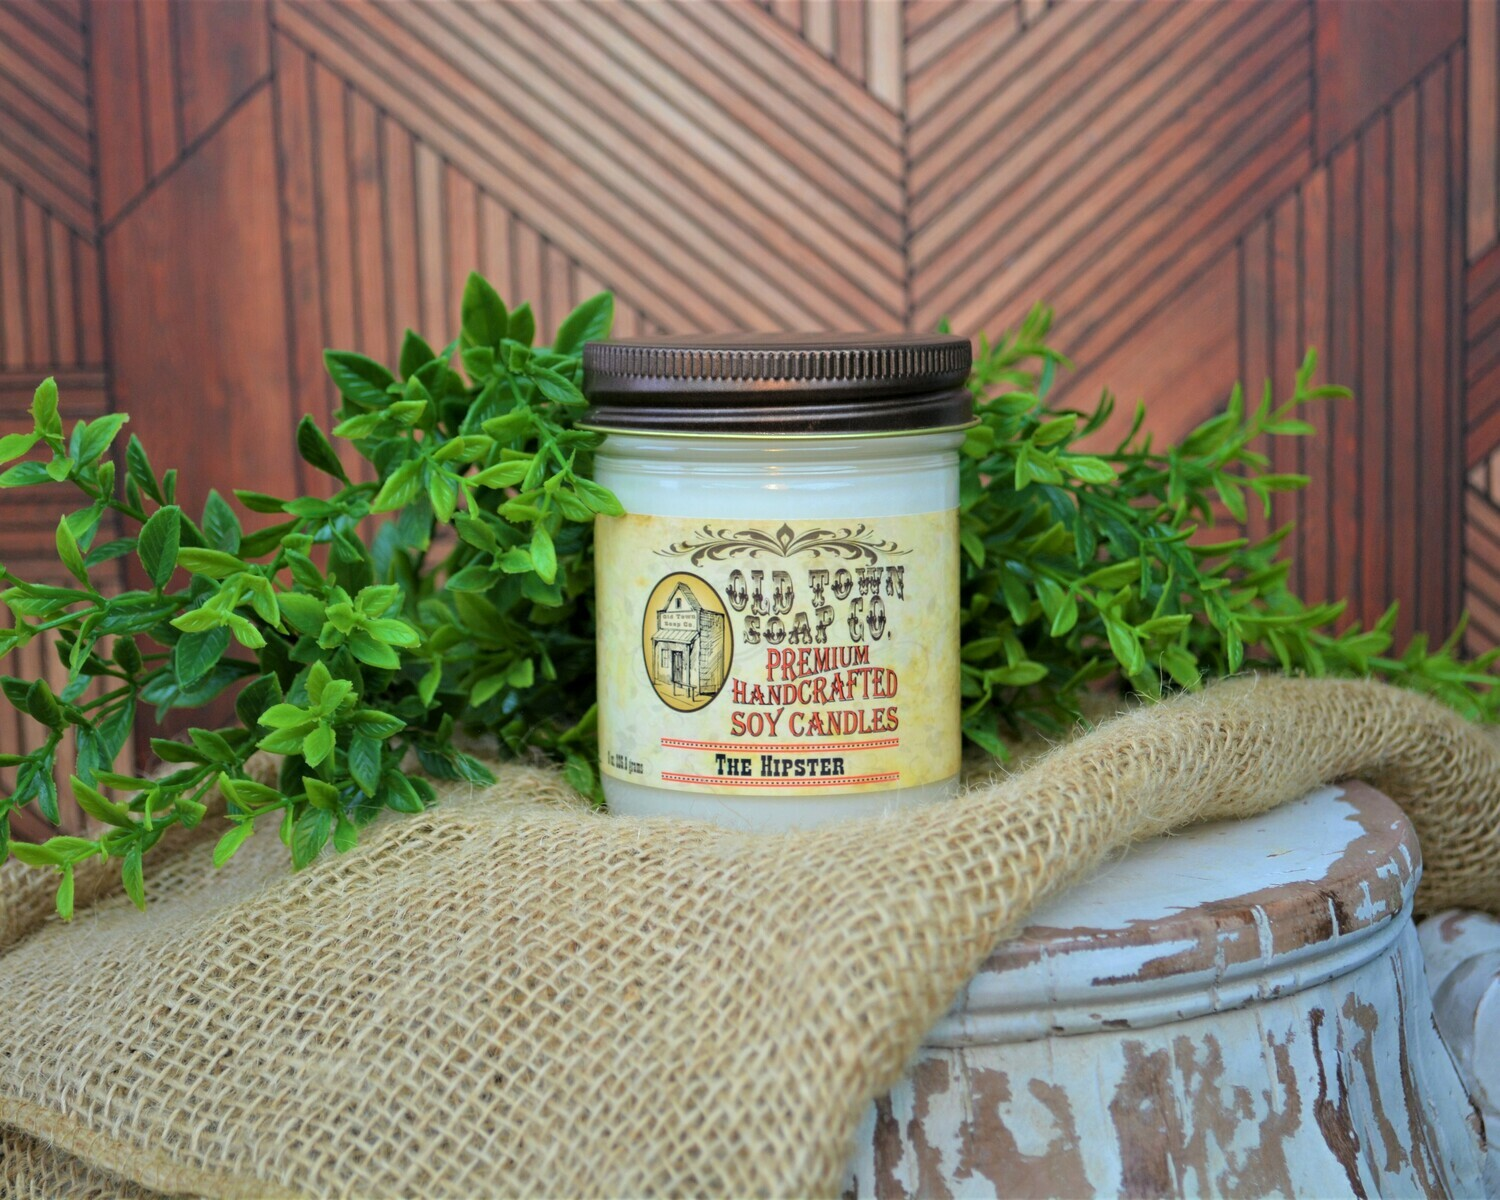 The Hipster - 8oz. Candle